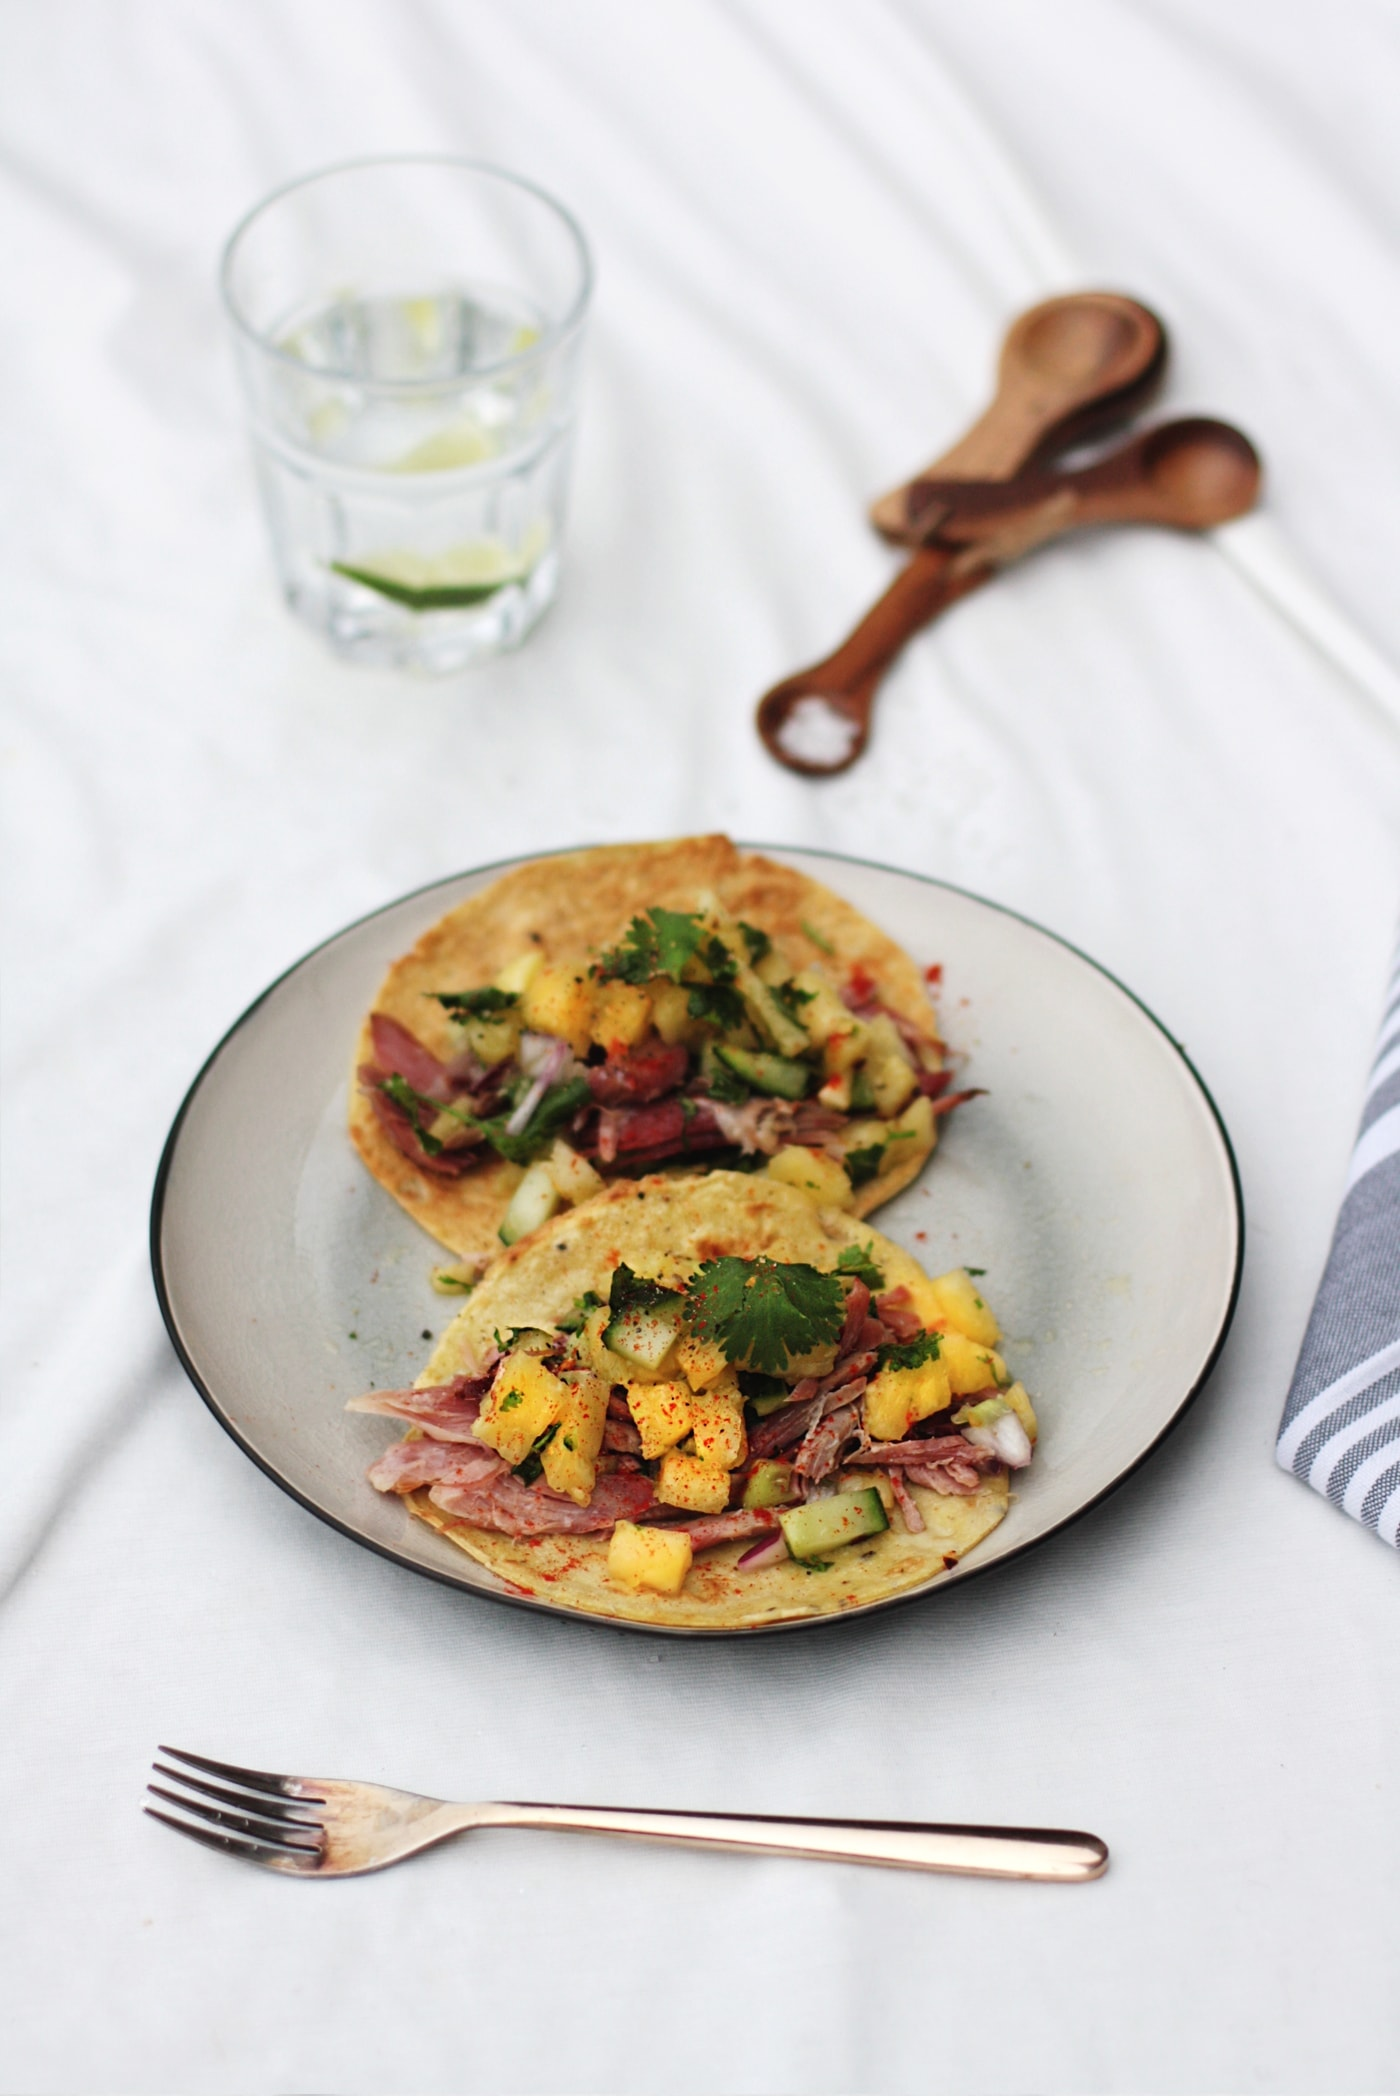 Paleo ham tacos with pineapple salsa recipe   easy grain free, gluten free, dairy free meal